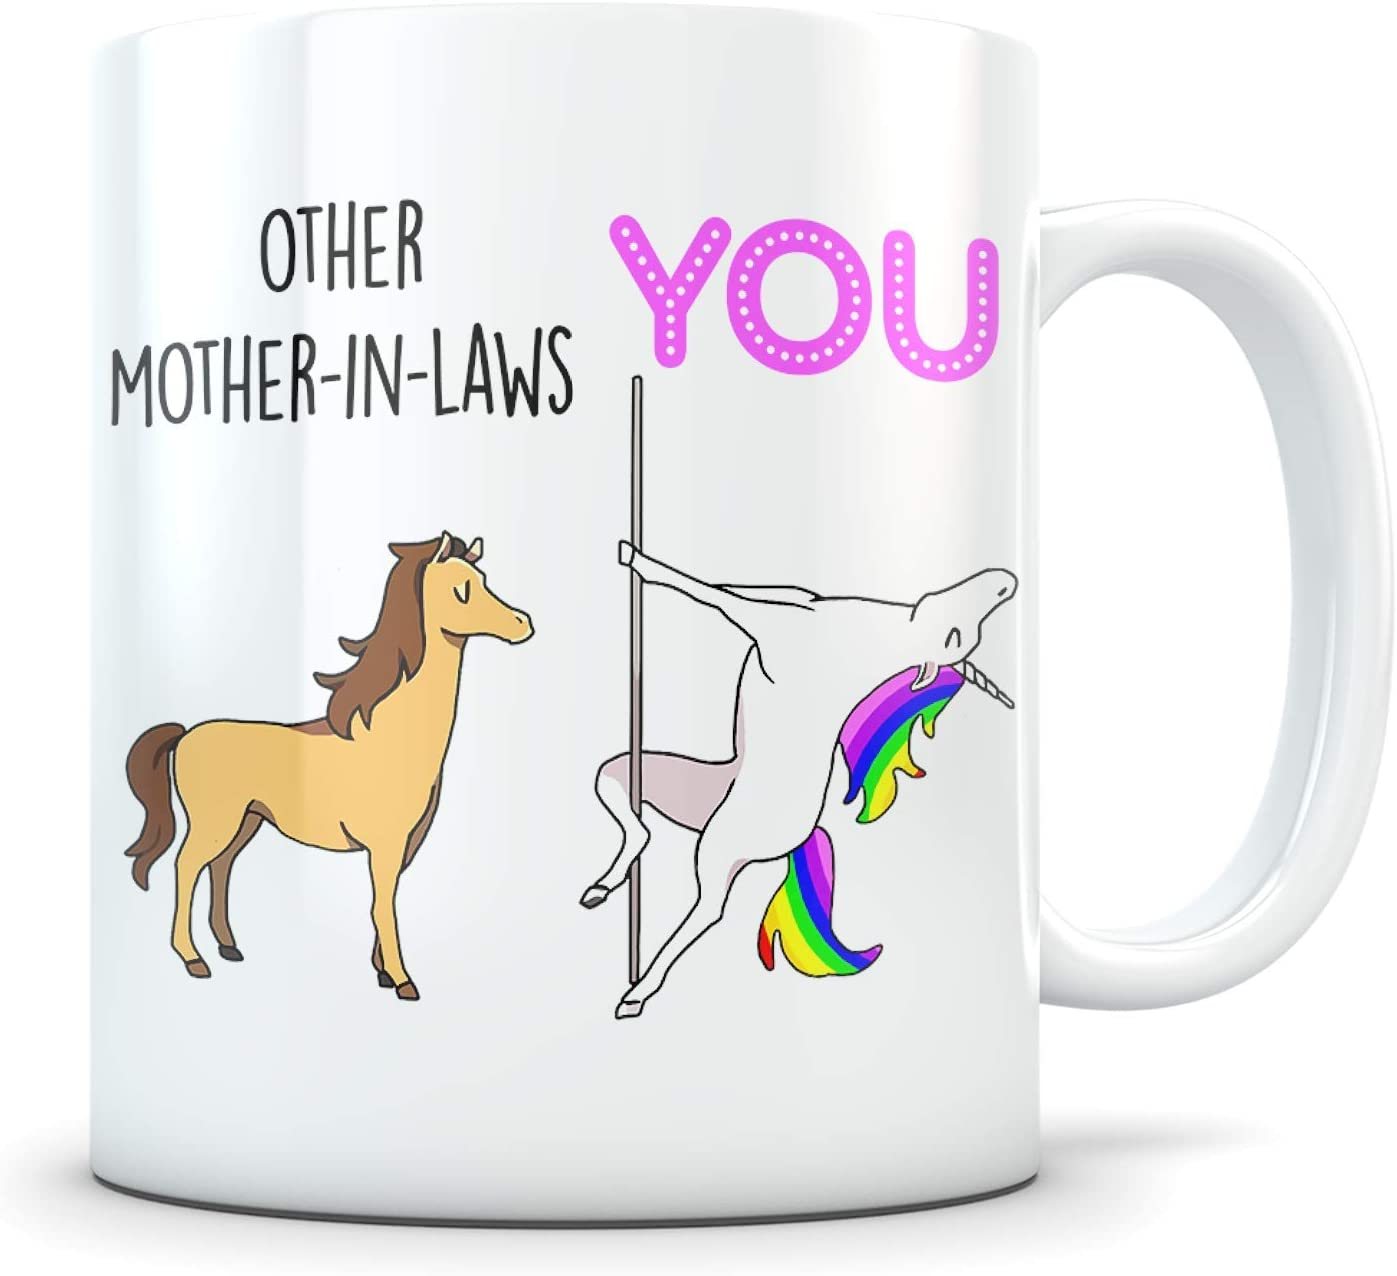 Amazon Com Funny Mother In Law Gifts Best Unicorn Themed Coffee Mug For A Mil Cute Inlaw Appreciation Cup Idea For Her For Mother S Day Birthday Or Christmas Kitchen Dining